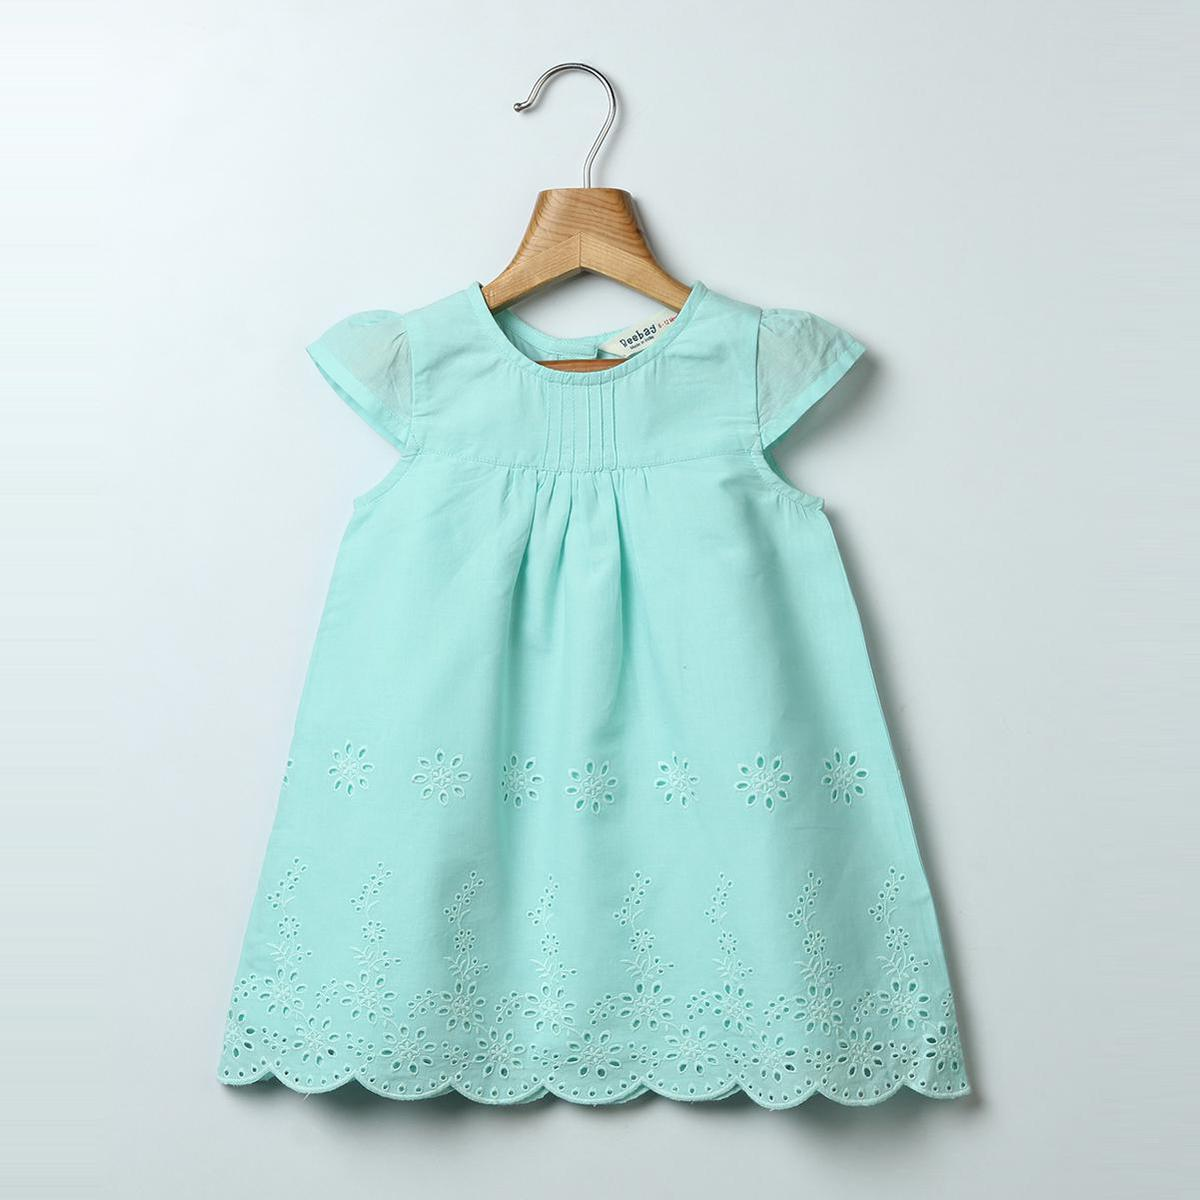 Beebay - Turquoise Colored Turq Schiffli Embroidered Cotton Dress For Girls